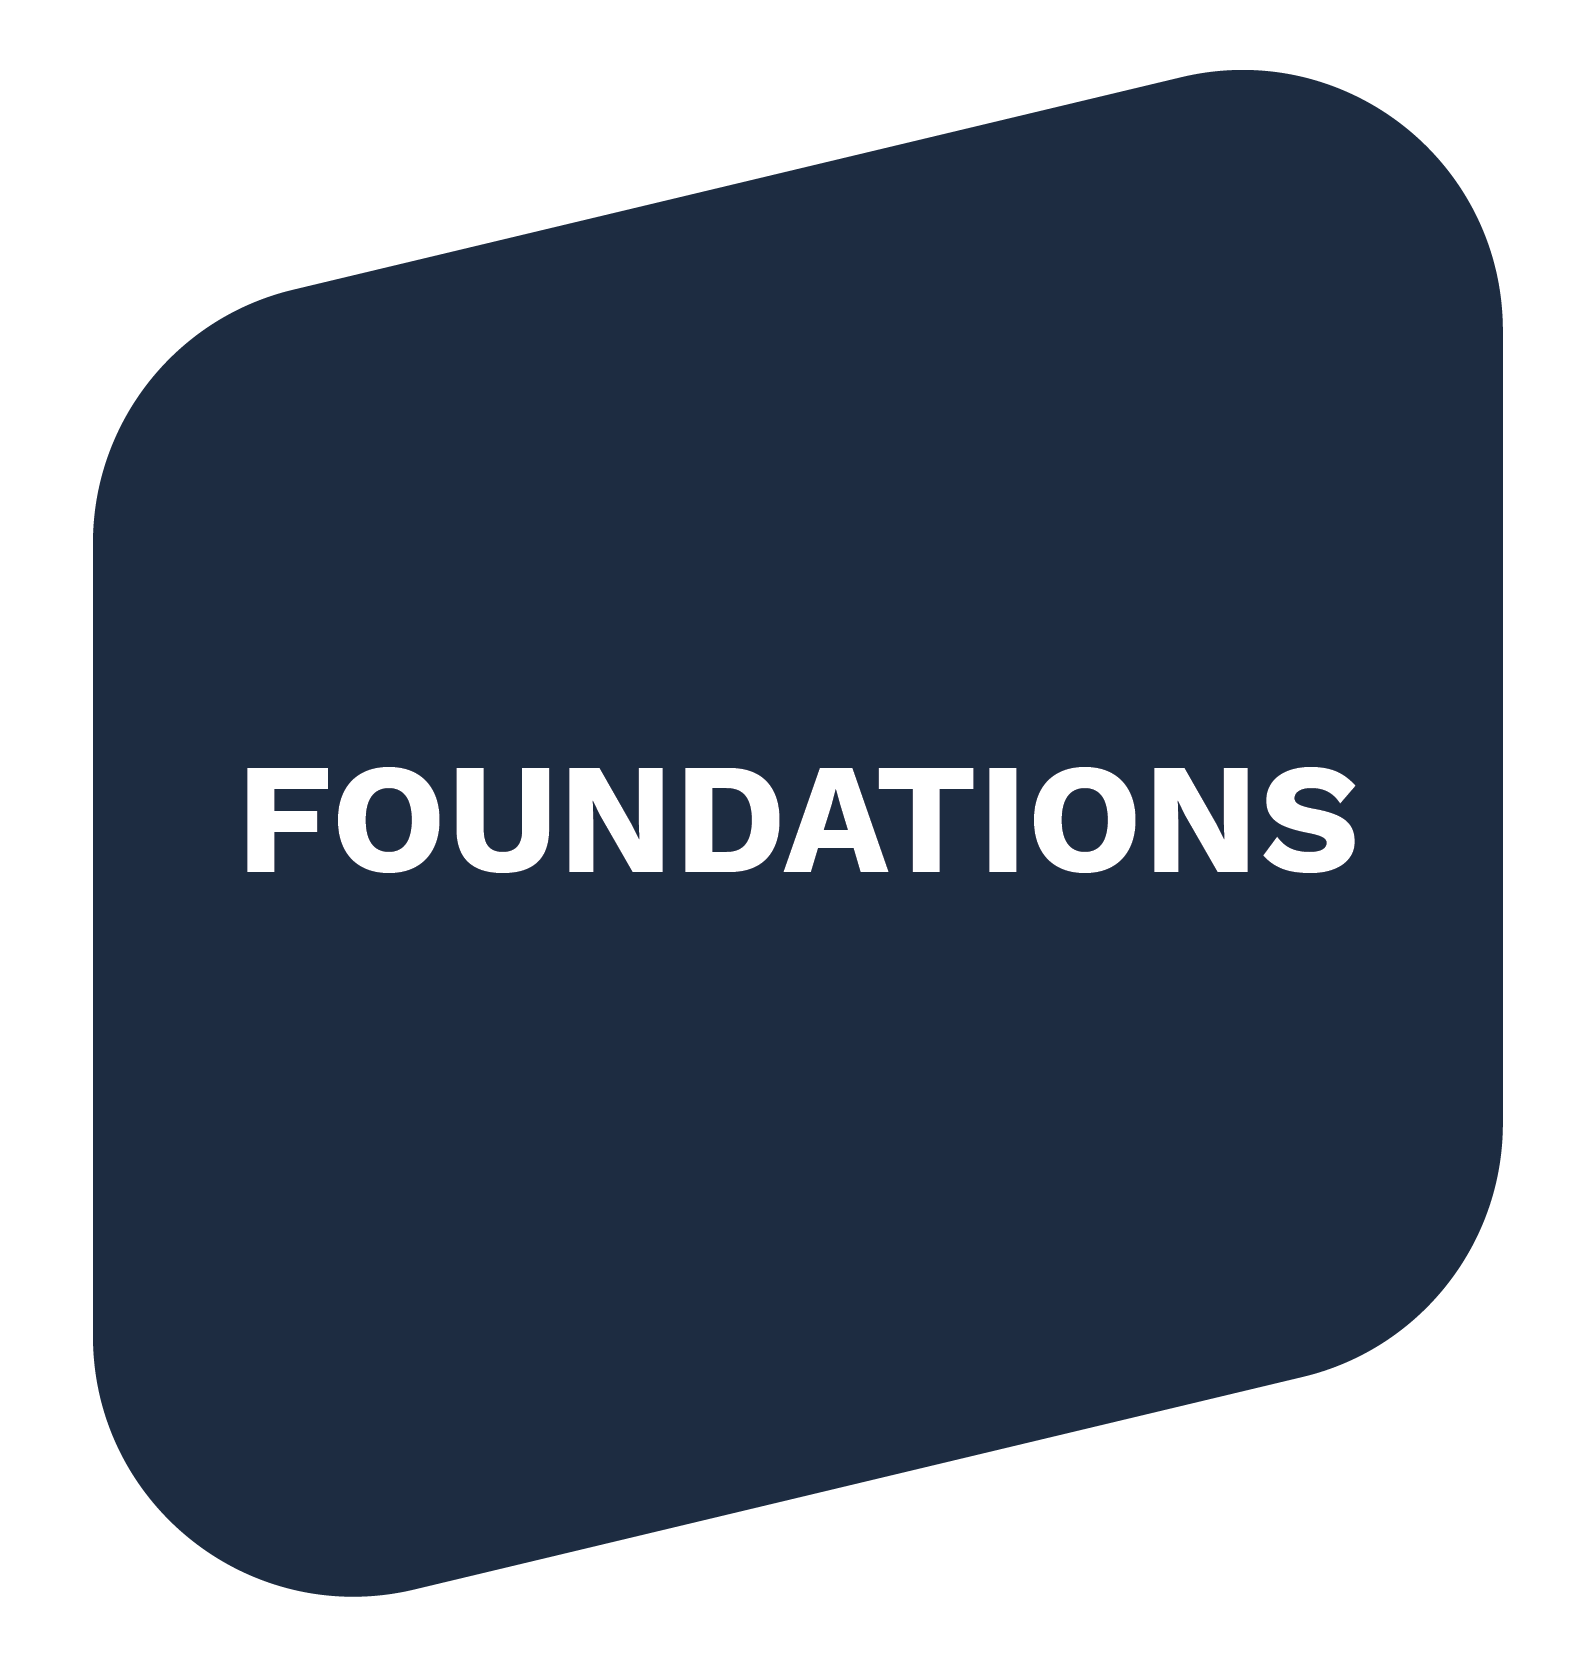 foundations-01.png